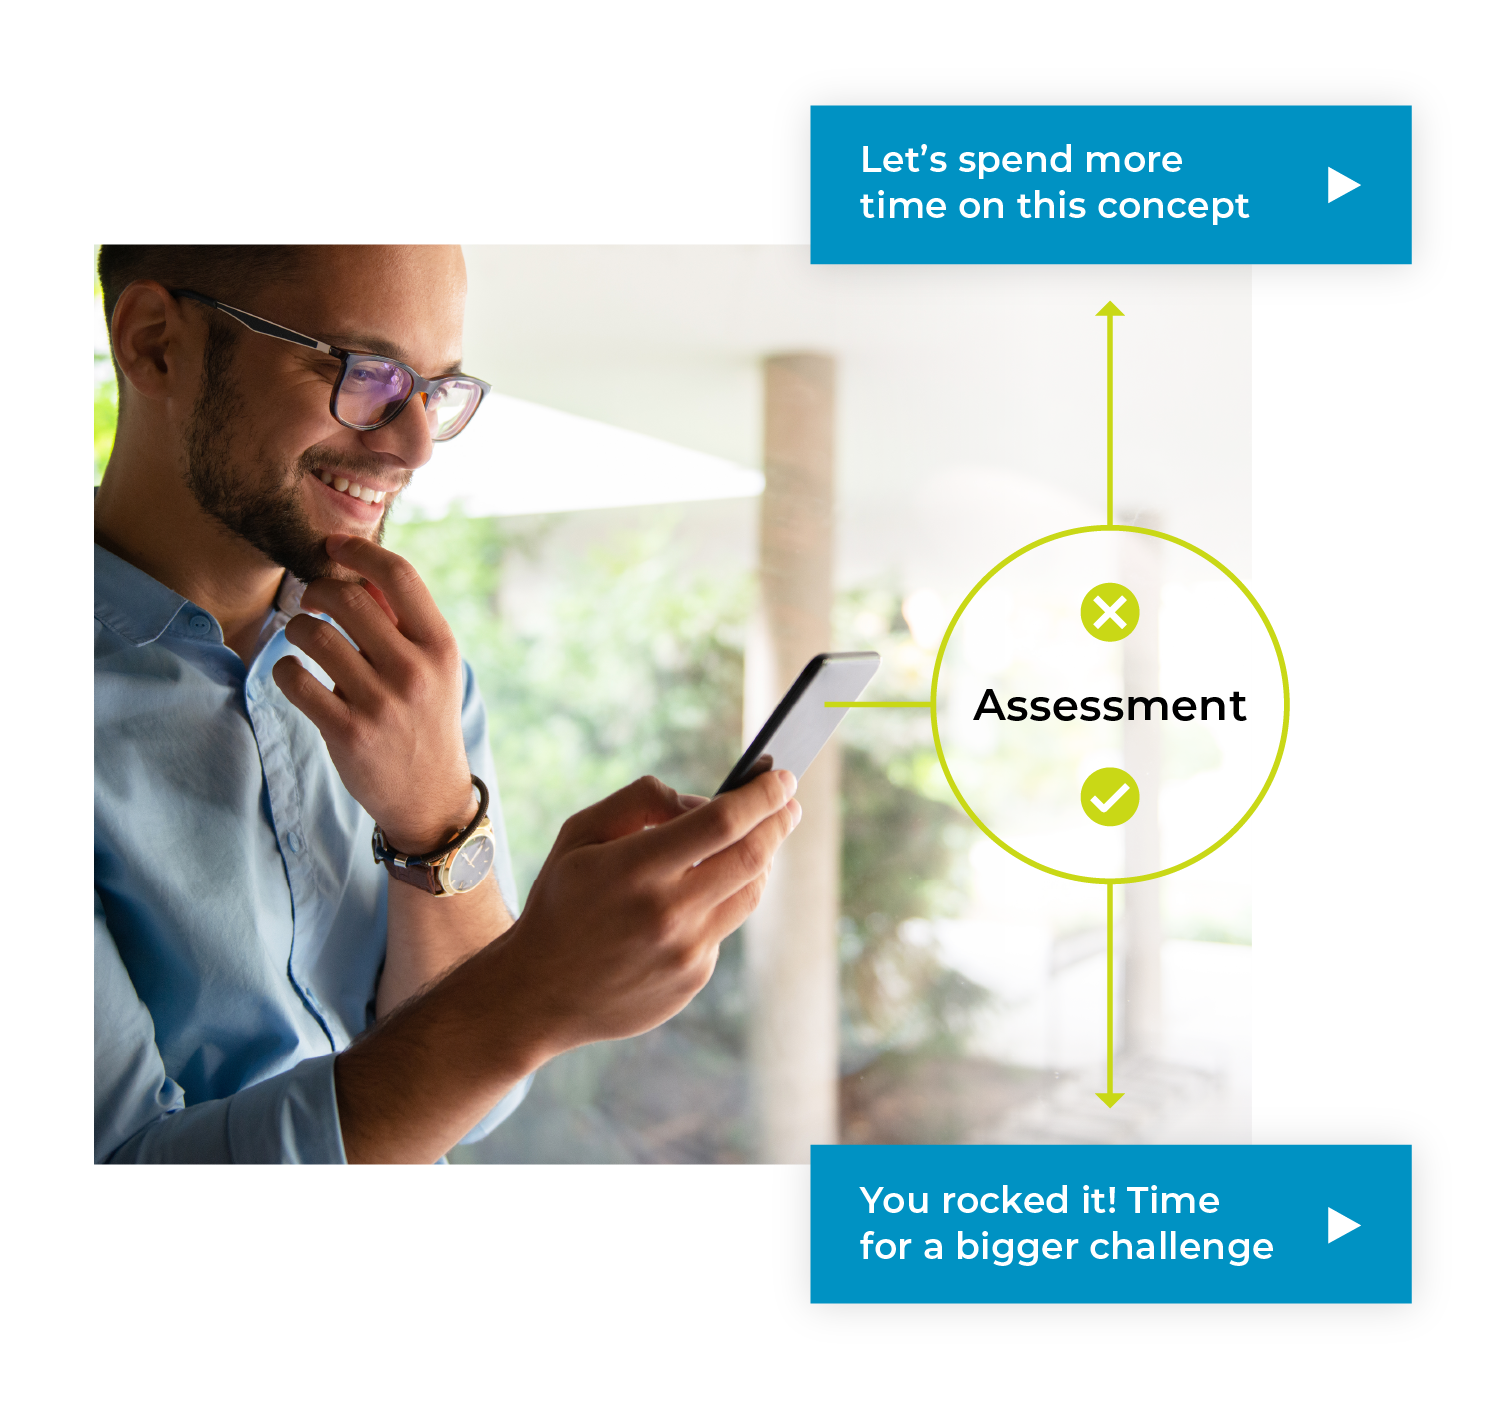 Man on phone with infographic depicting adaptive learning and gamification that leads to sustained employee behavior change.